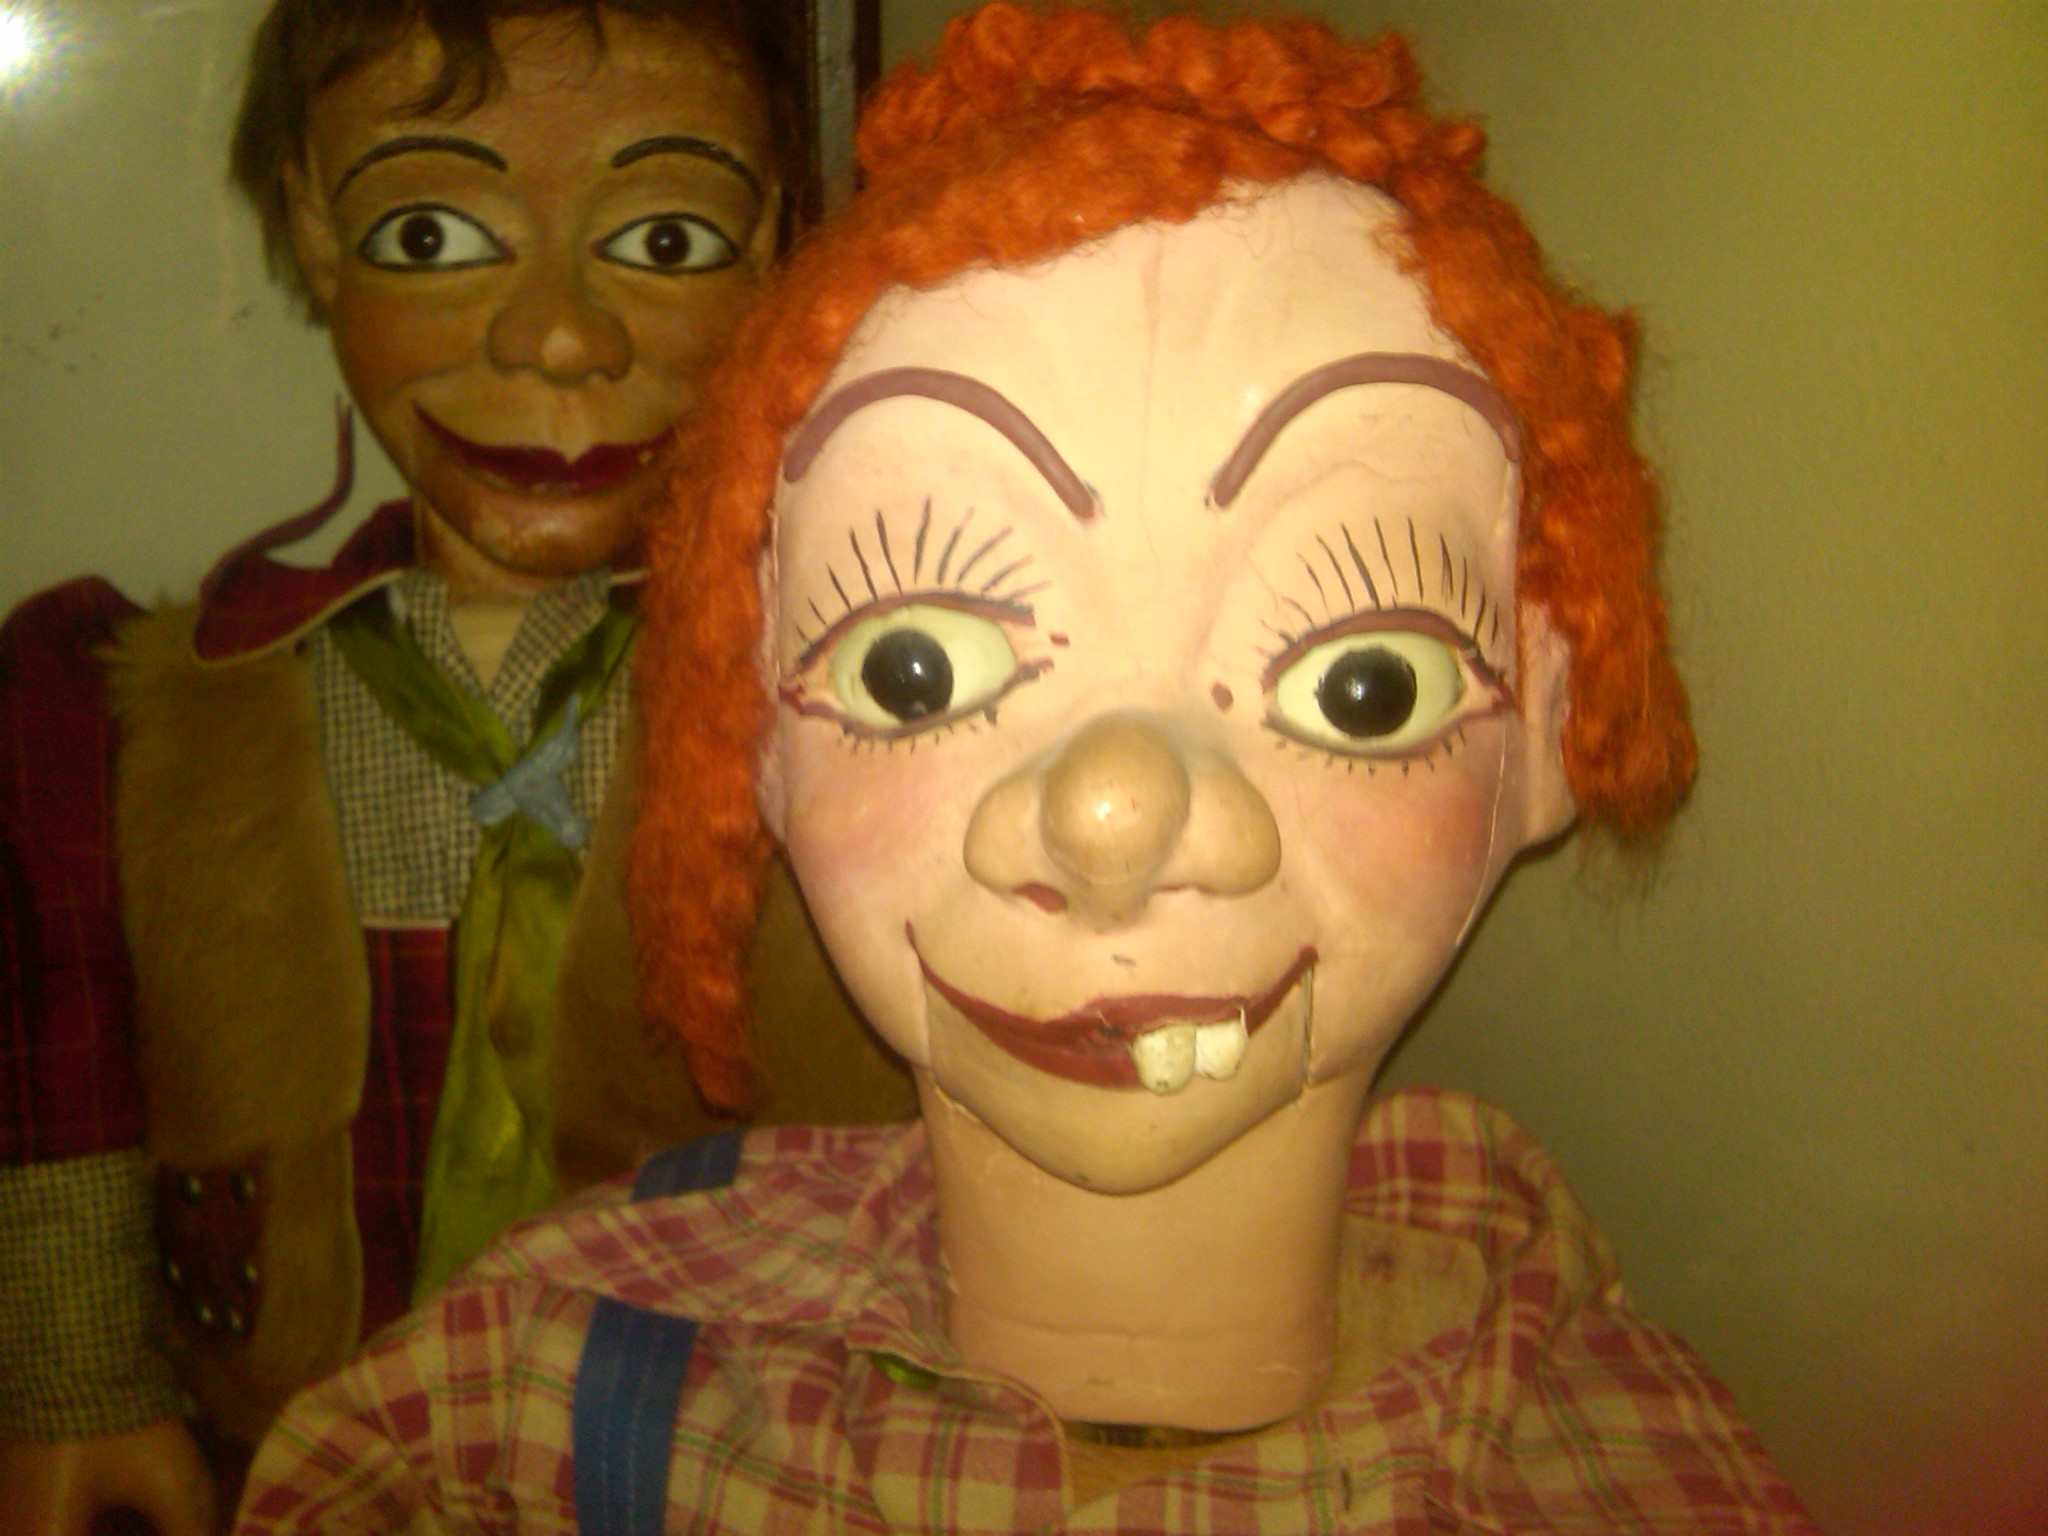 JC Turner Ventriloquist dummy